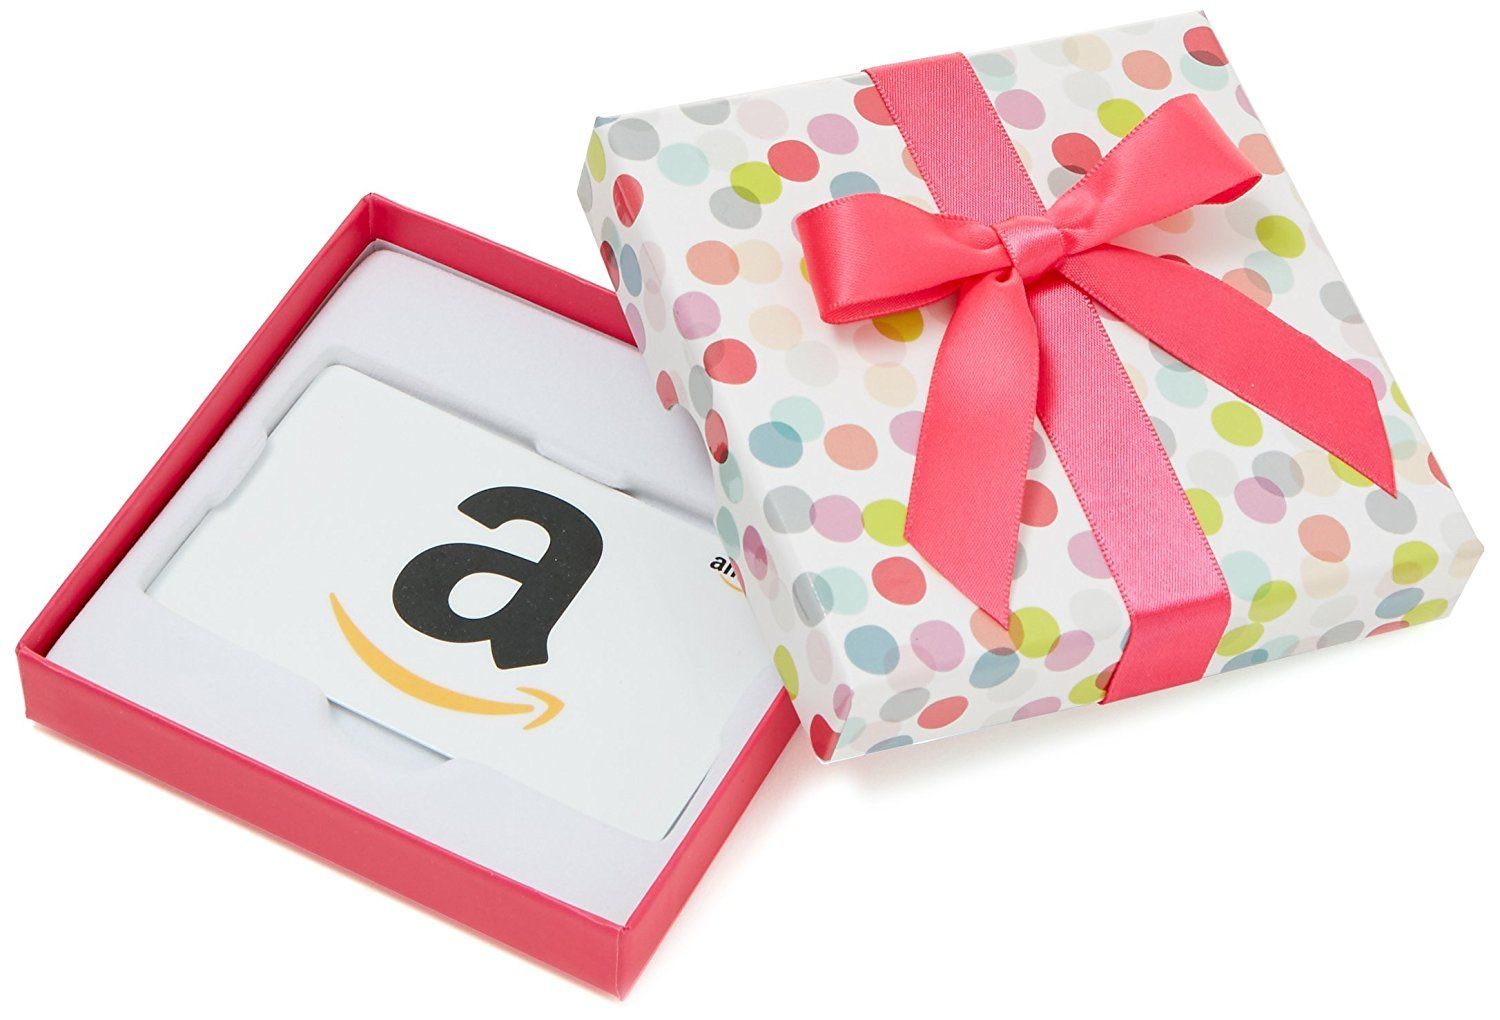 Amazon.com: Amazon.com Gift Card for Any Amount in a Dot Box (Classic White Card Design): Gift Cards